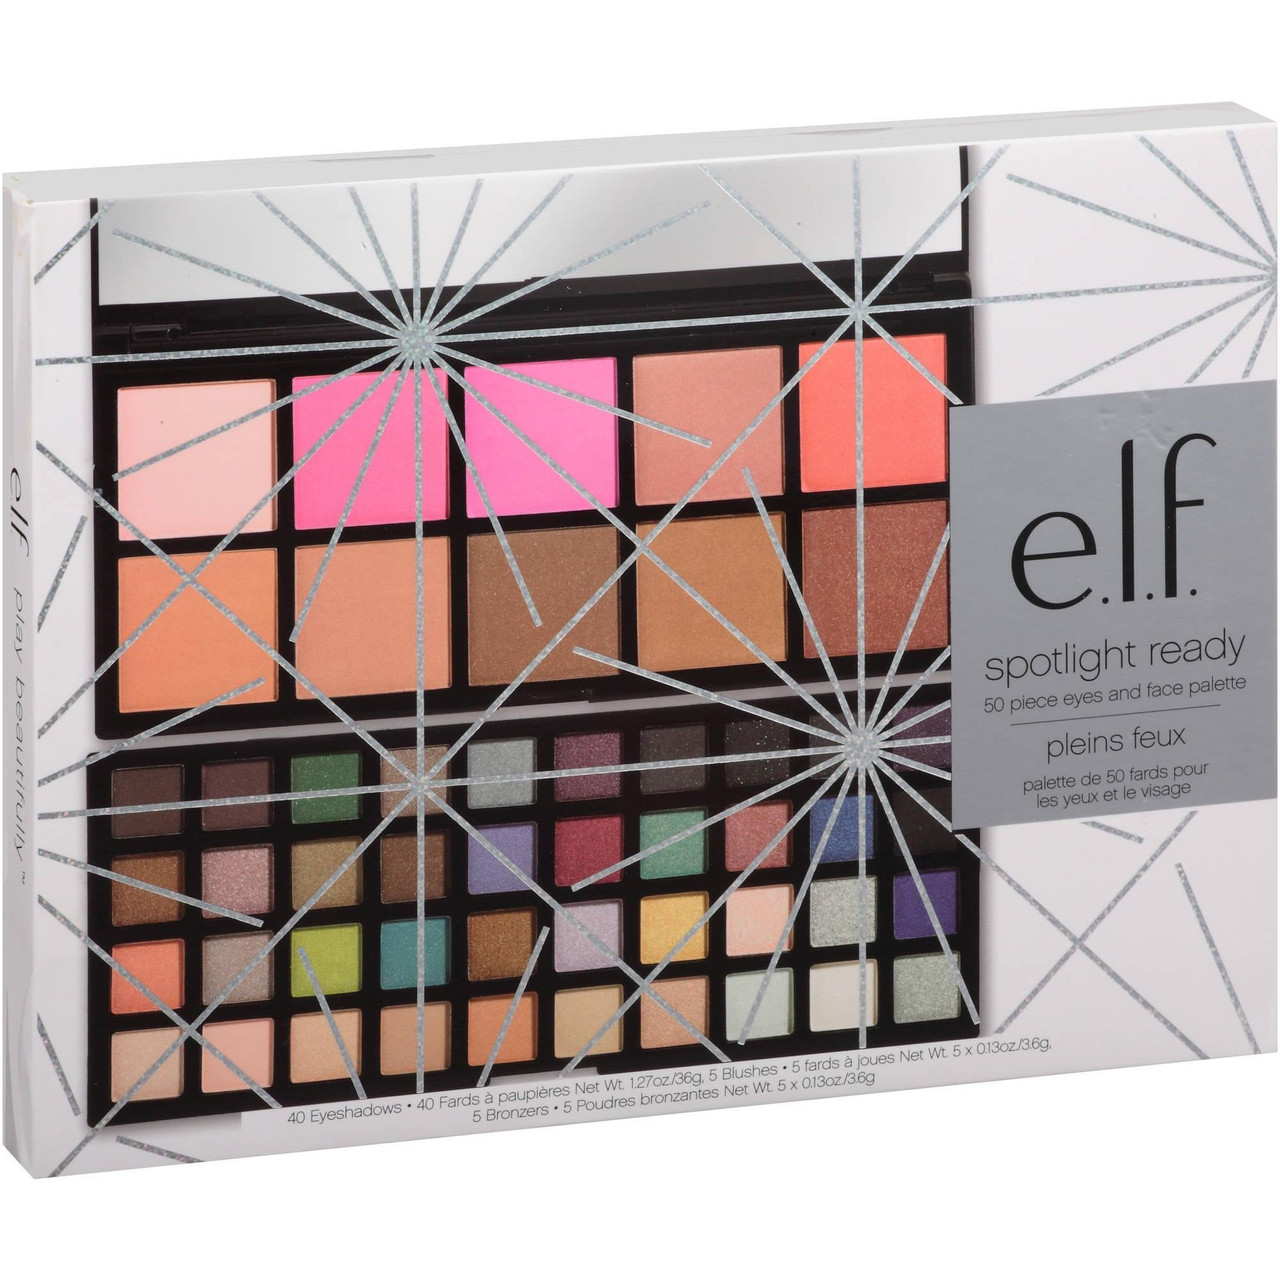 Палитра теней, бронзеров и румян e.l.f. Eyeshadow Set 50 цветов